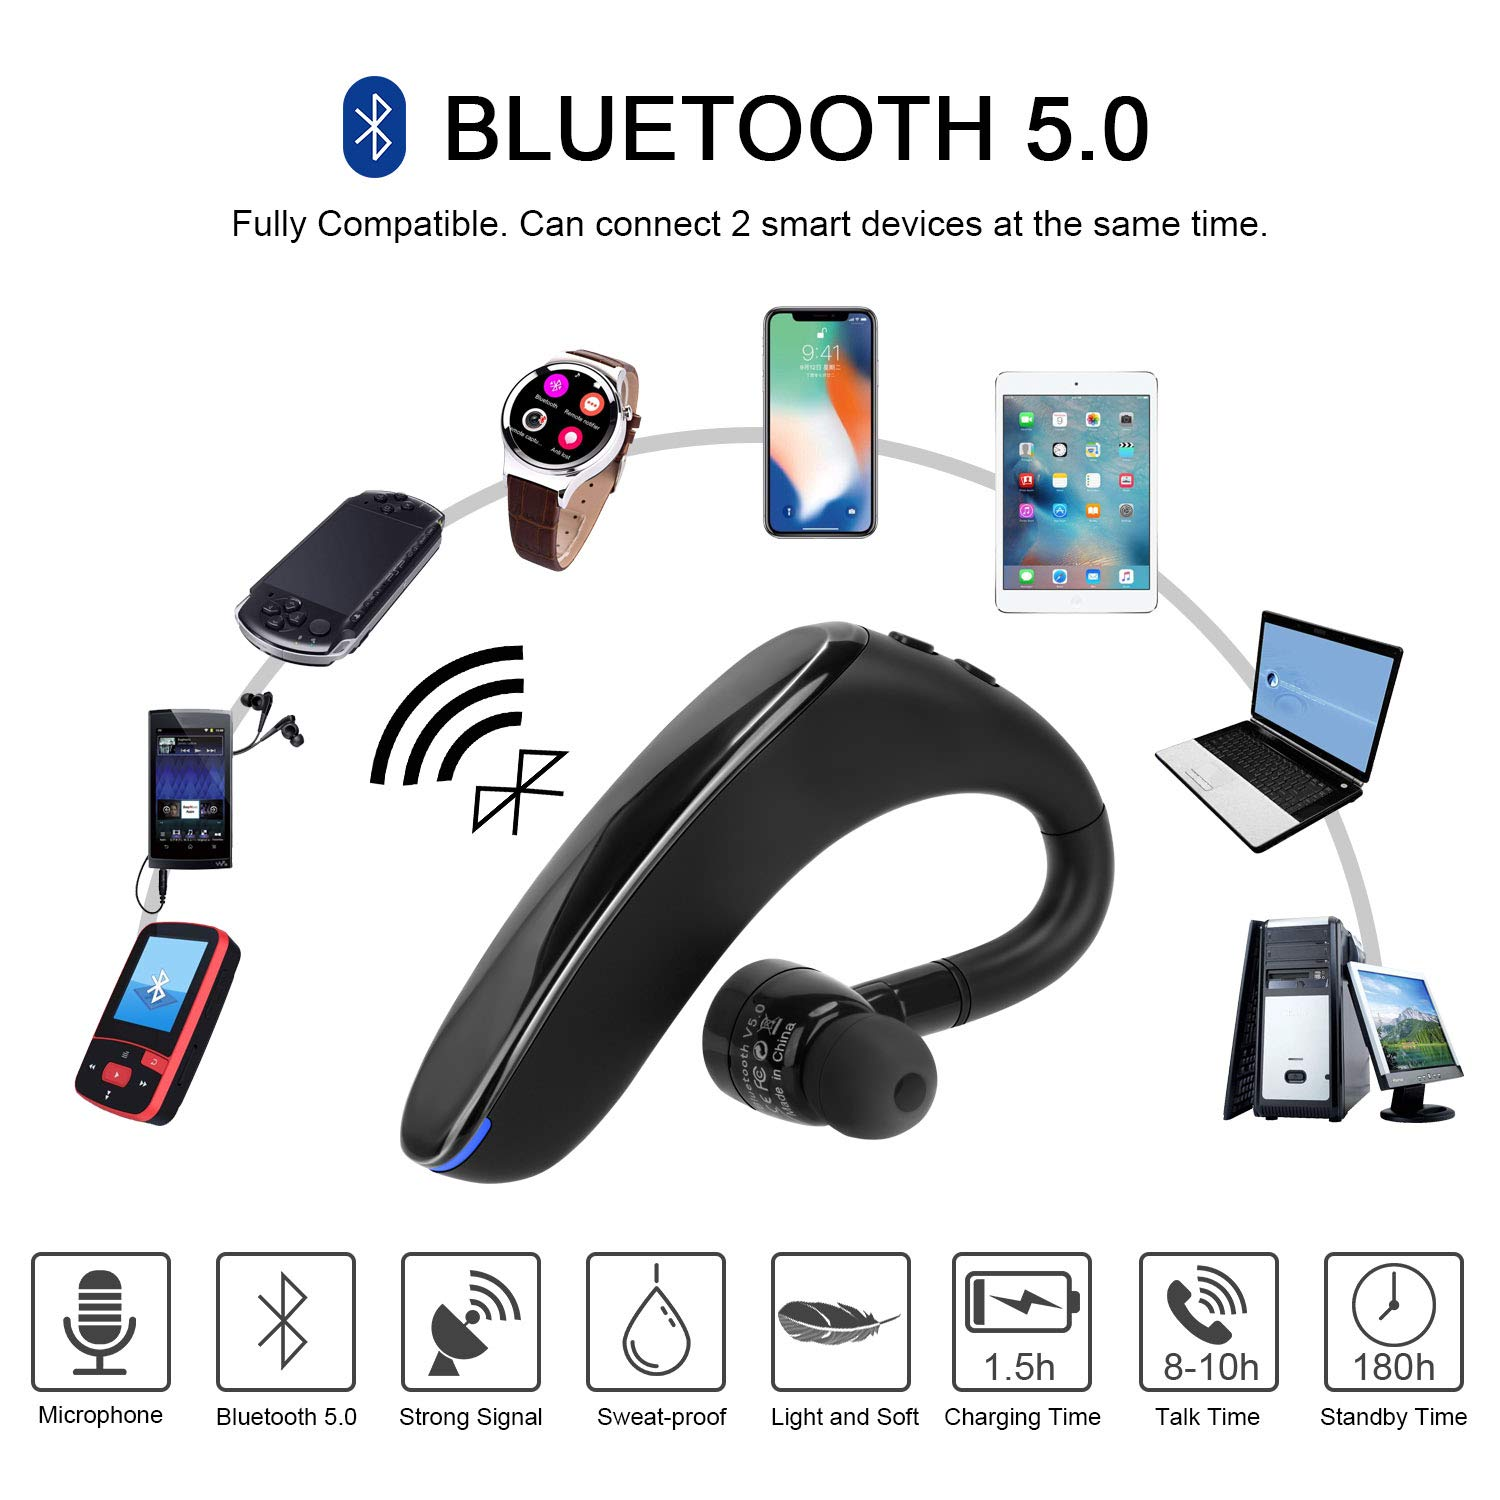 Bluetooth Headset V5.0 Black Wireless Business Earpiece Lightweight Noisy Suppression Bluetooth Earphone with Microphone for Phone//Laptop//Car